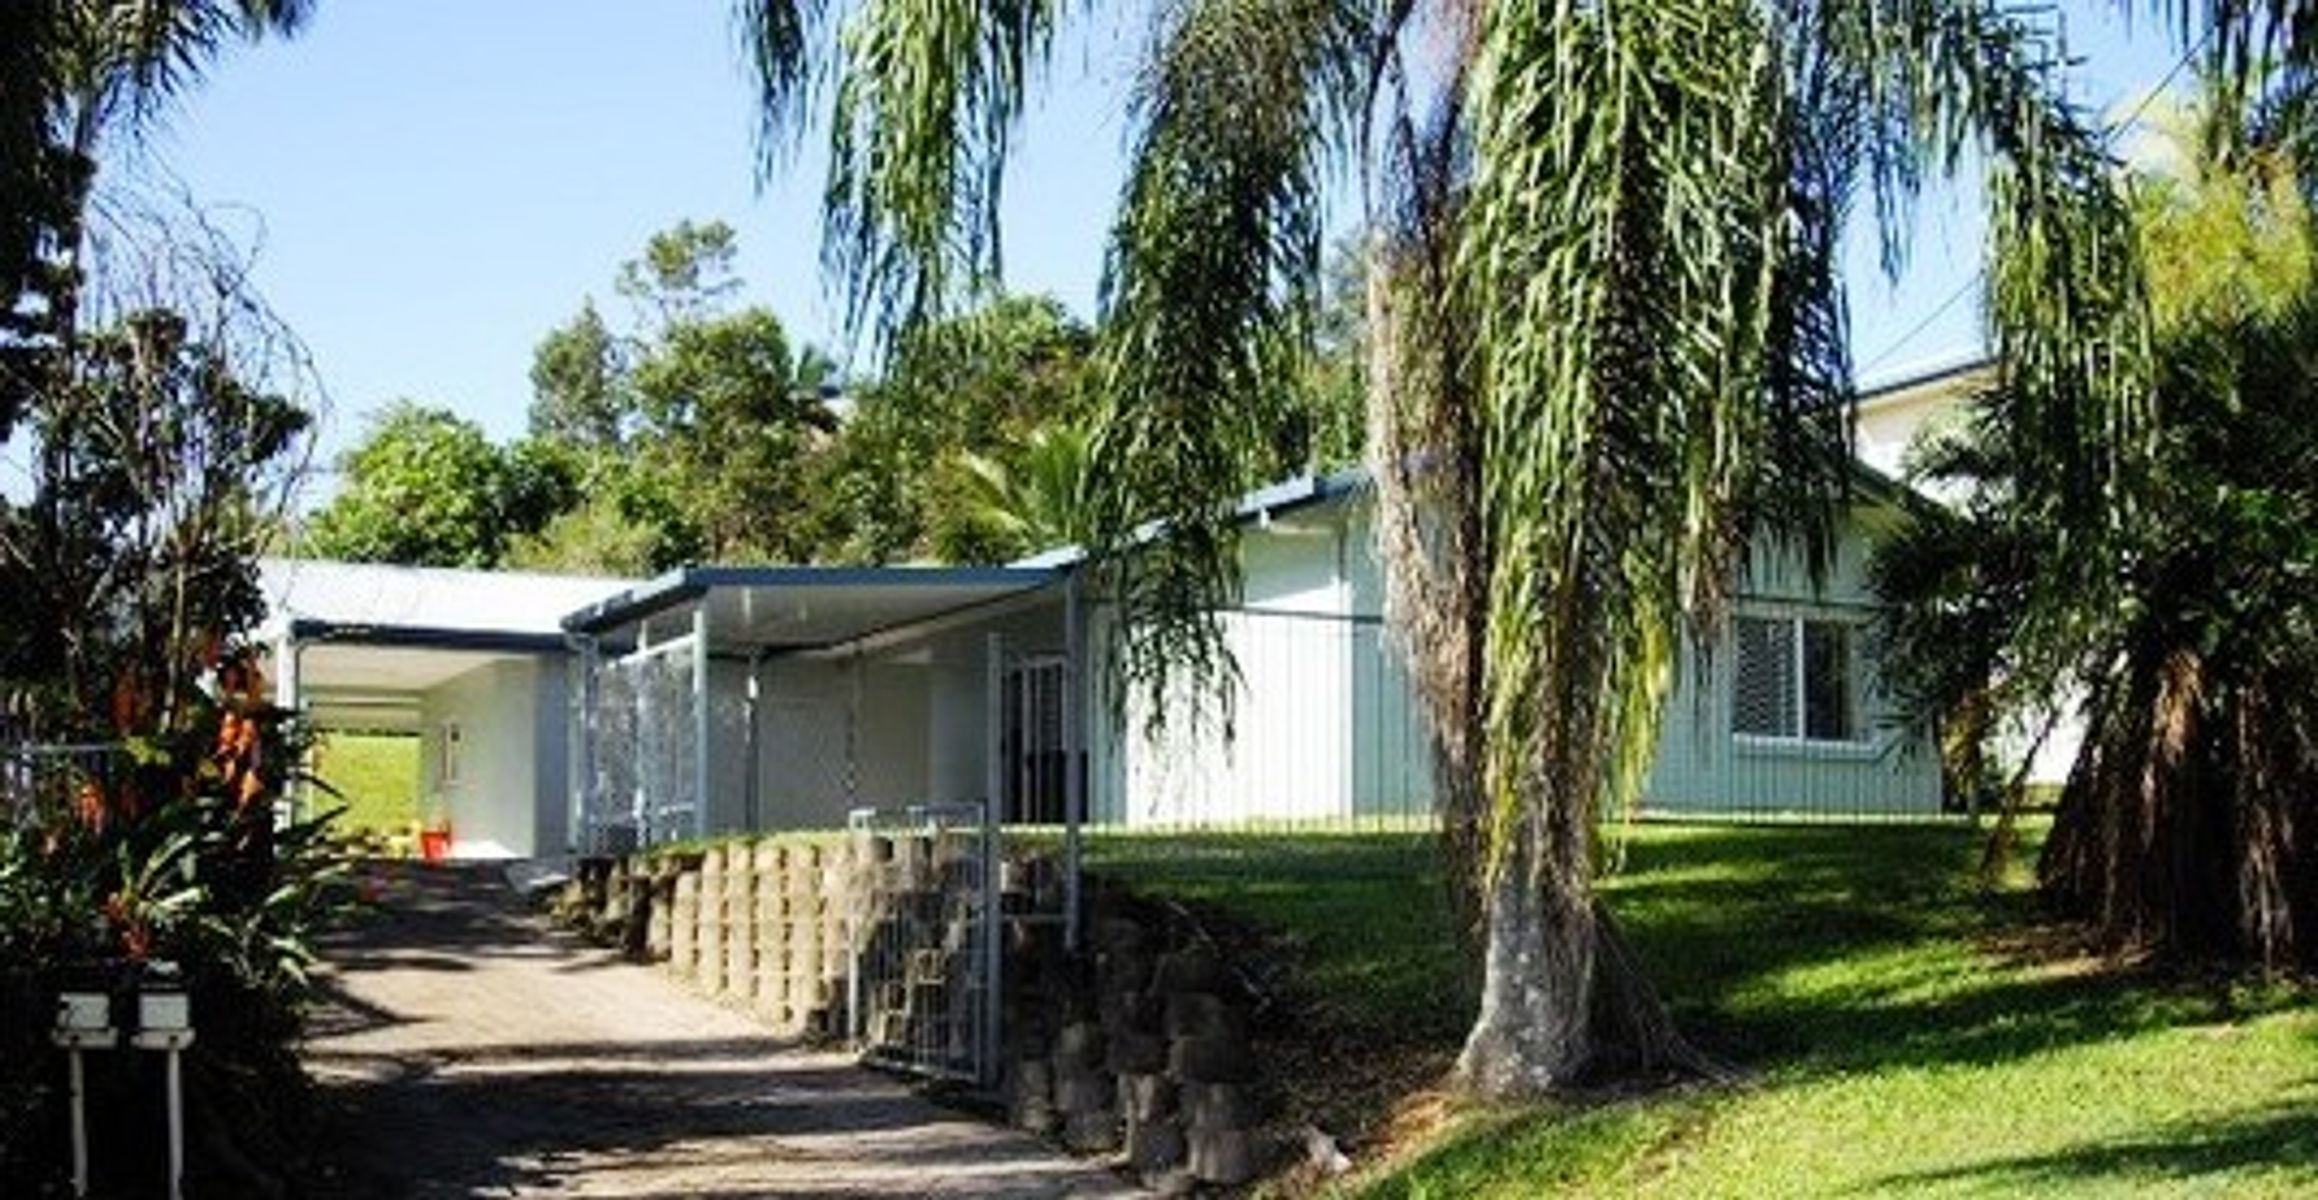 1 AND 2/20 Punchard Street, East Innisfail, QLD 4860